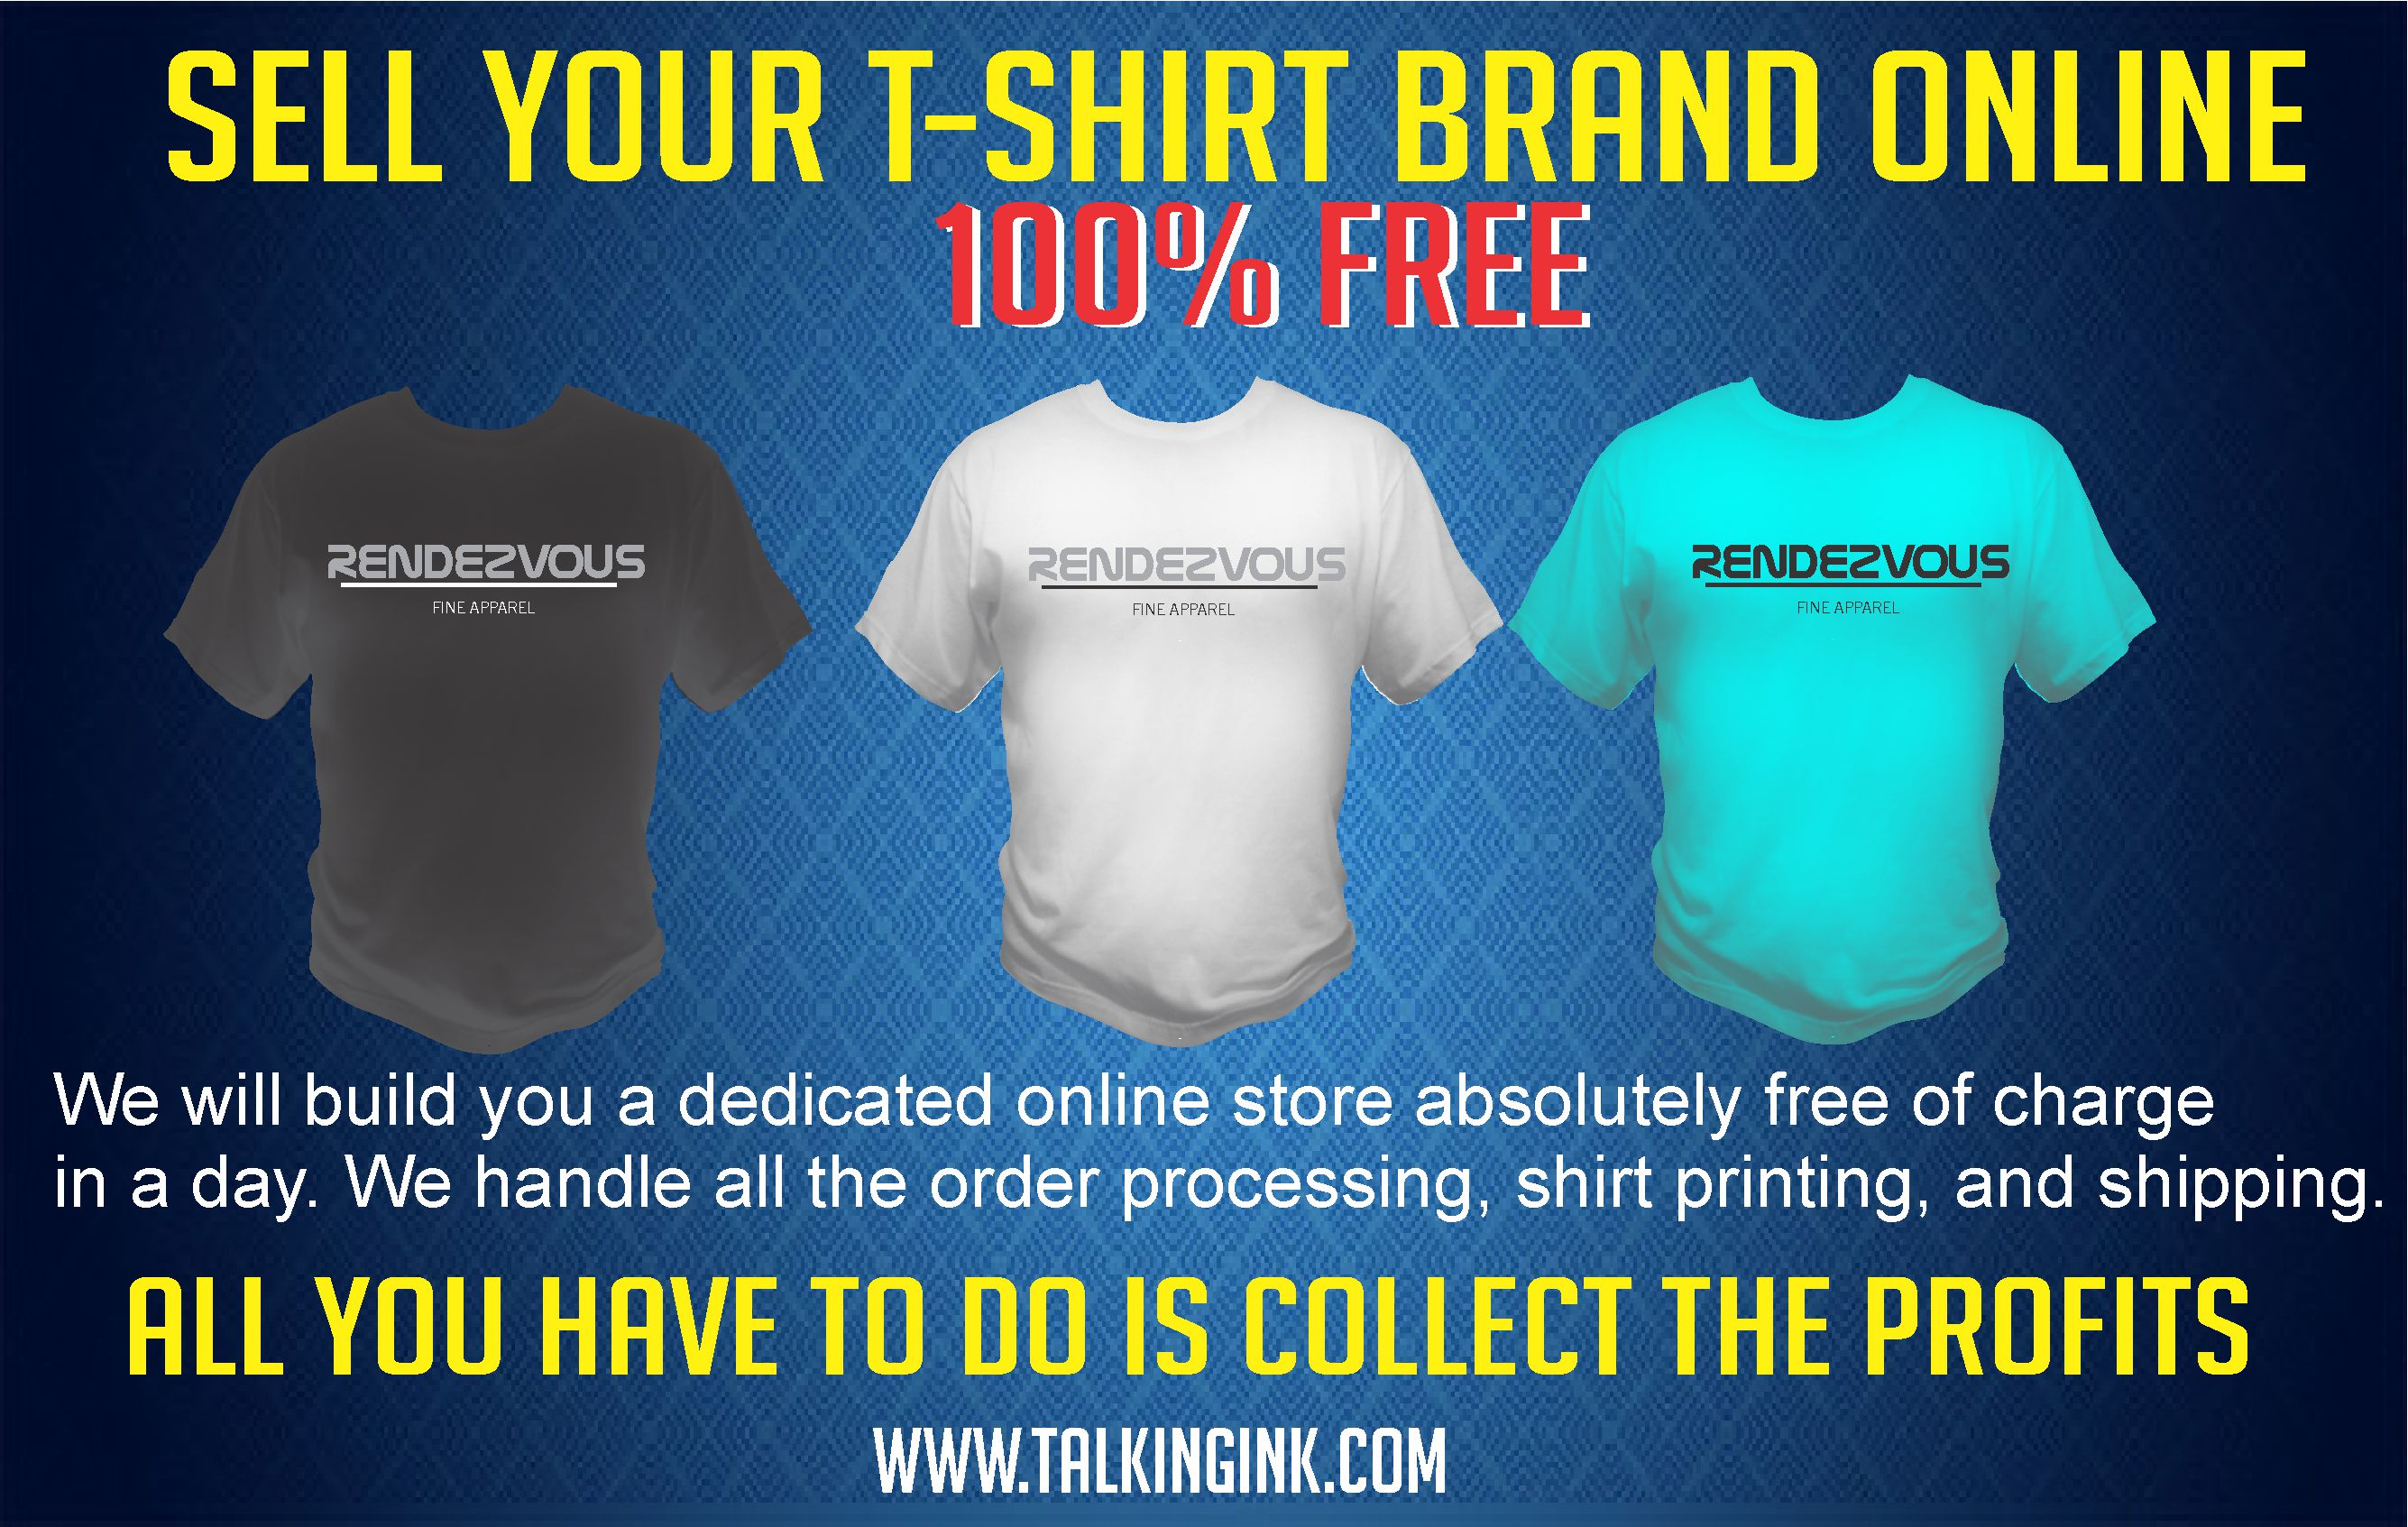 sell your t-shirt brand online free